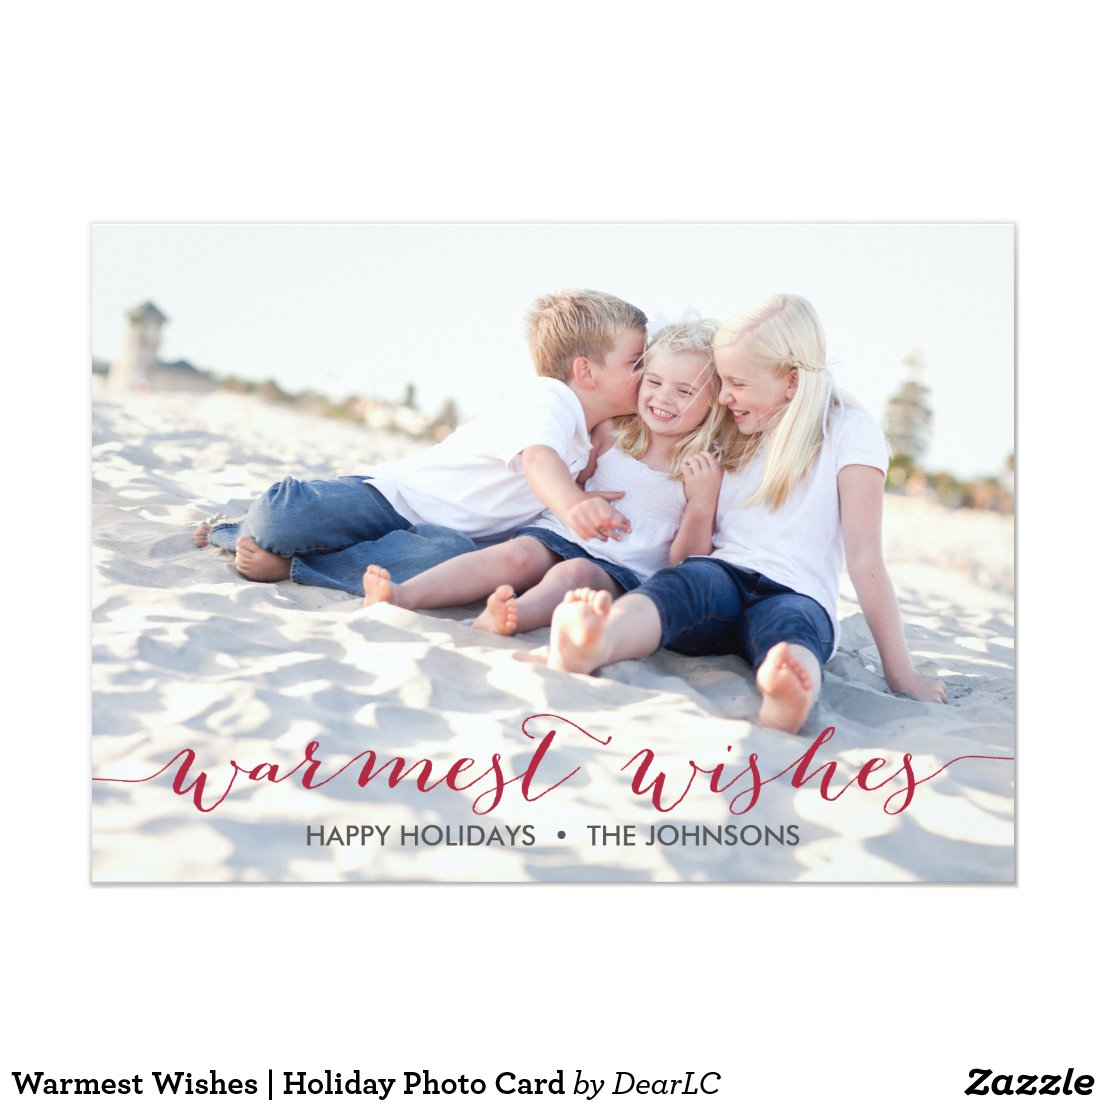 Warmest Wishes | Holiday Photo Card